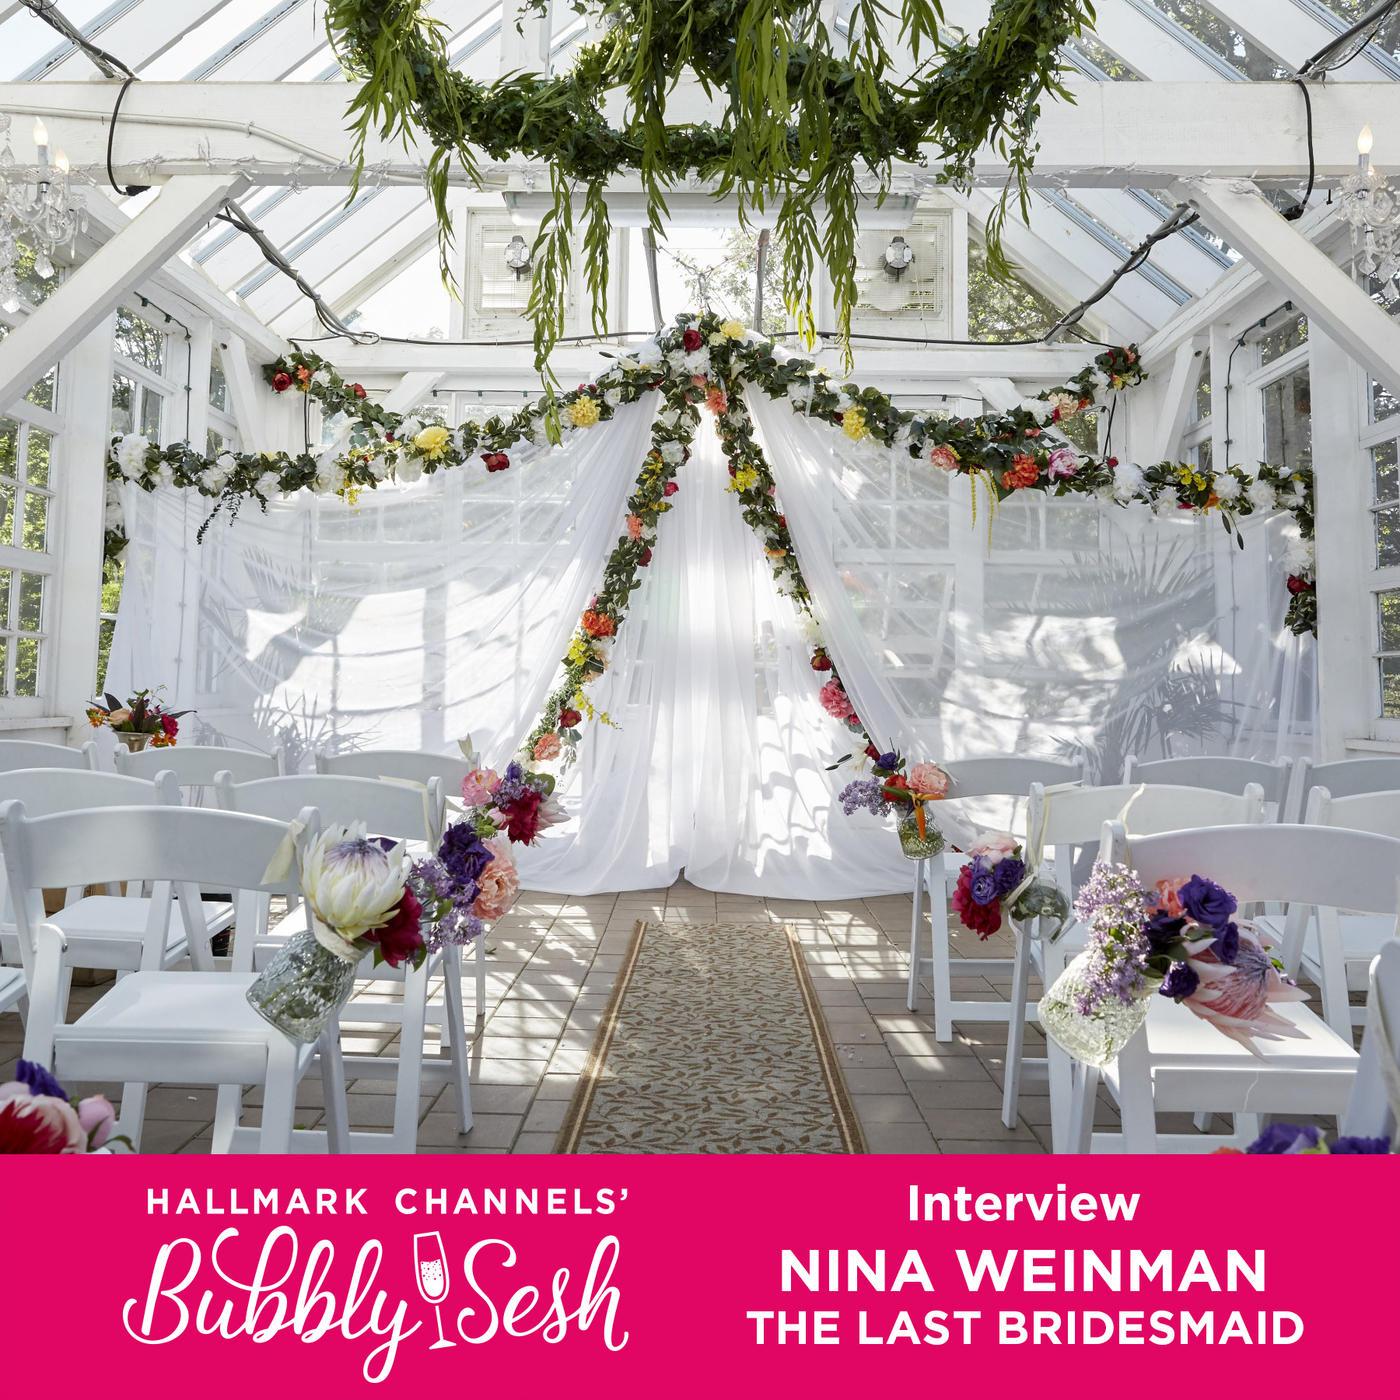 Nina Weinman Interview: The Last Bridesmaid